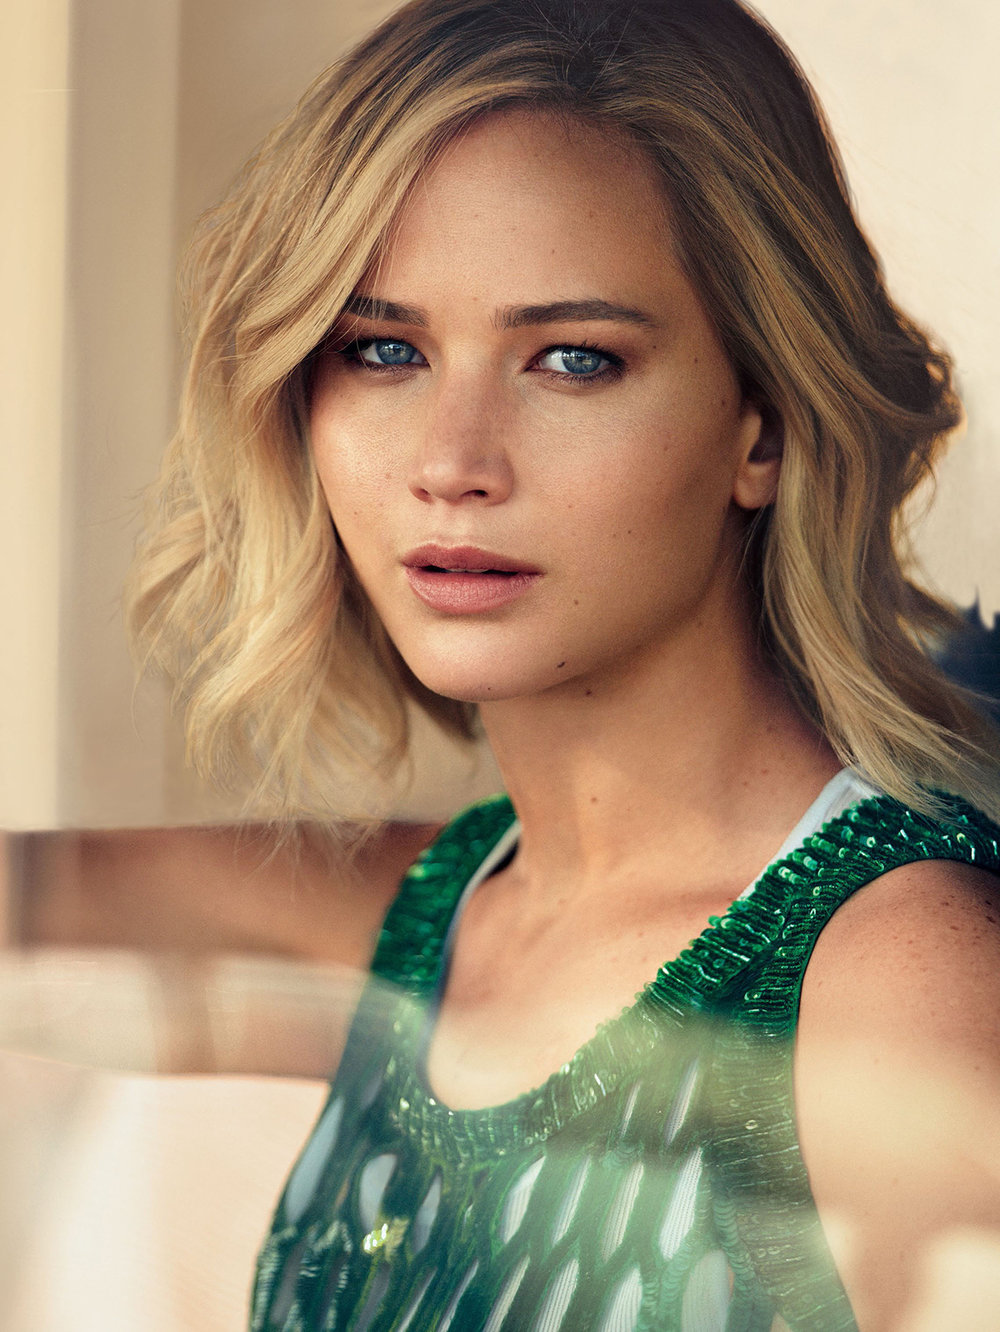 THE ORIGINAL – JENNIFER LAWRENCE BY MIKAEL JANSSON